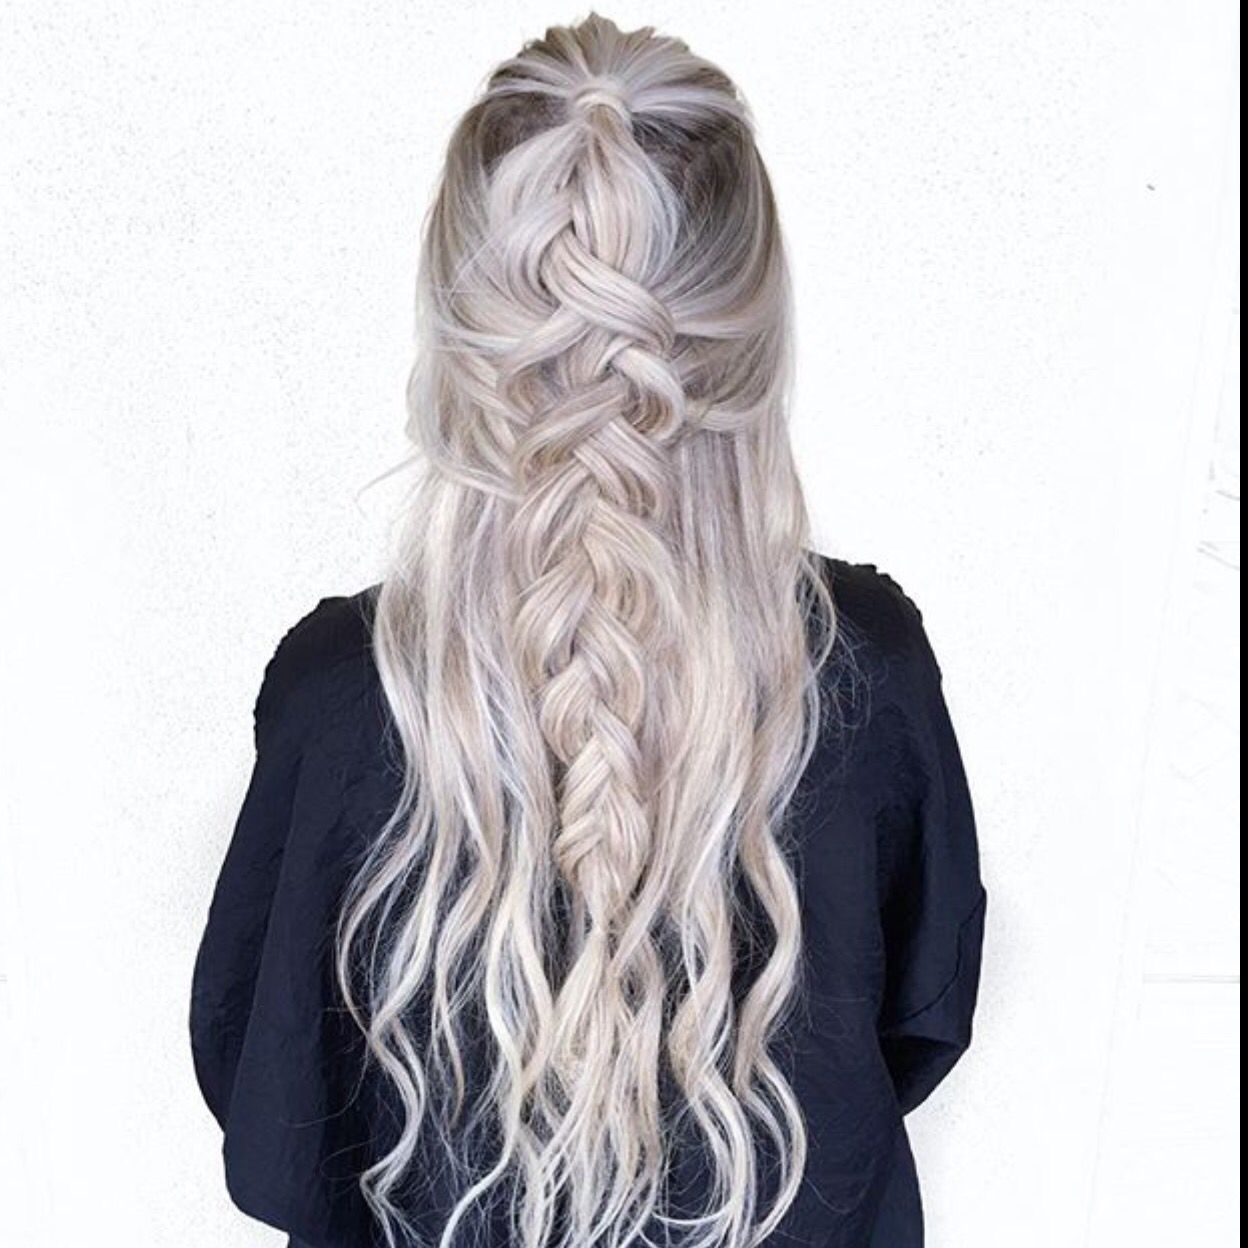 Pin by Tanner Charles on My weakness is...hair?   Pinterest ...